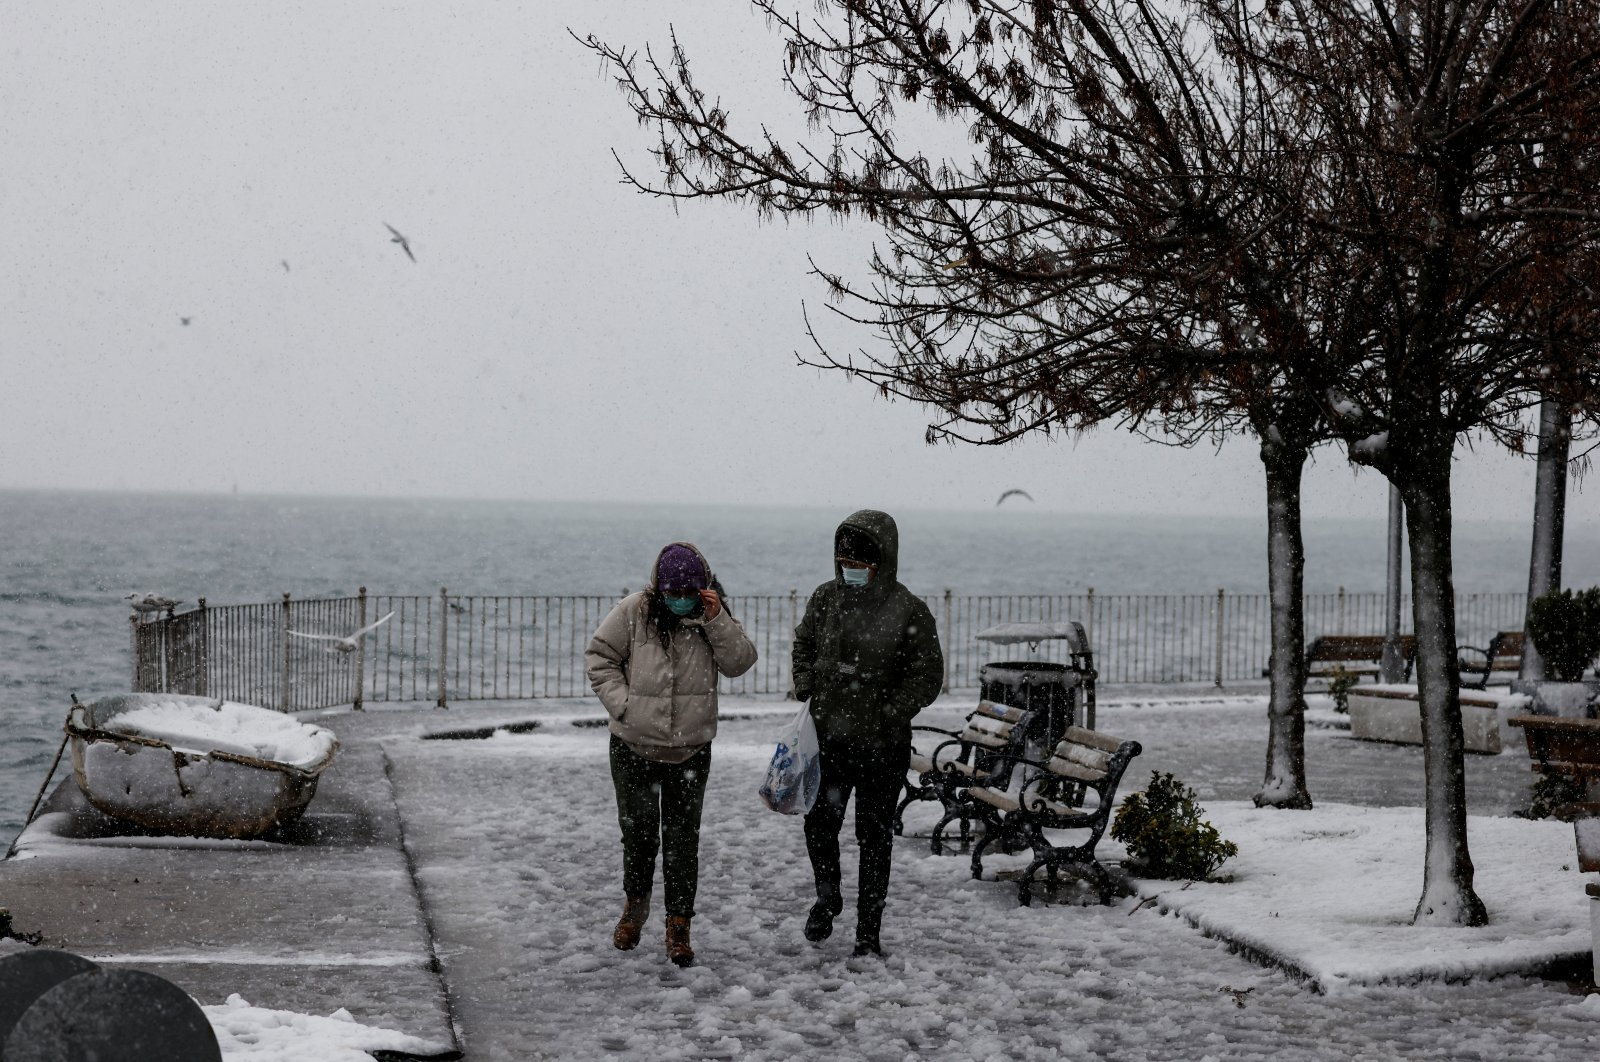 People wearing protective masks walk by the Bosporus, in Istanbul, Turkey, Feb. 14, 2021. (Reuters Photo)